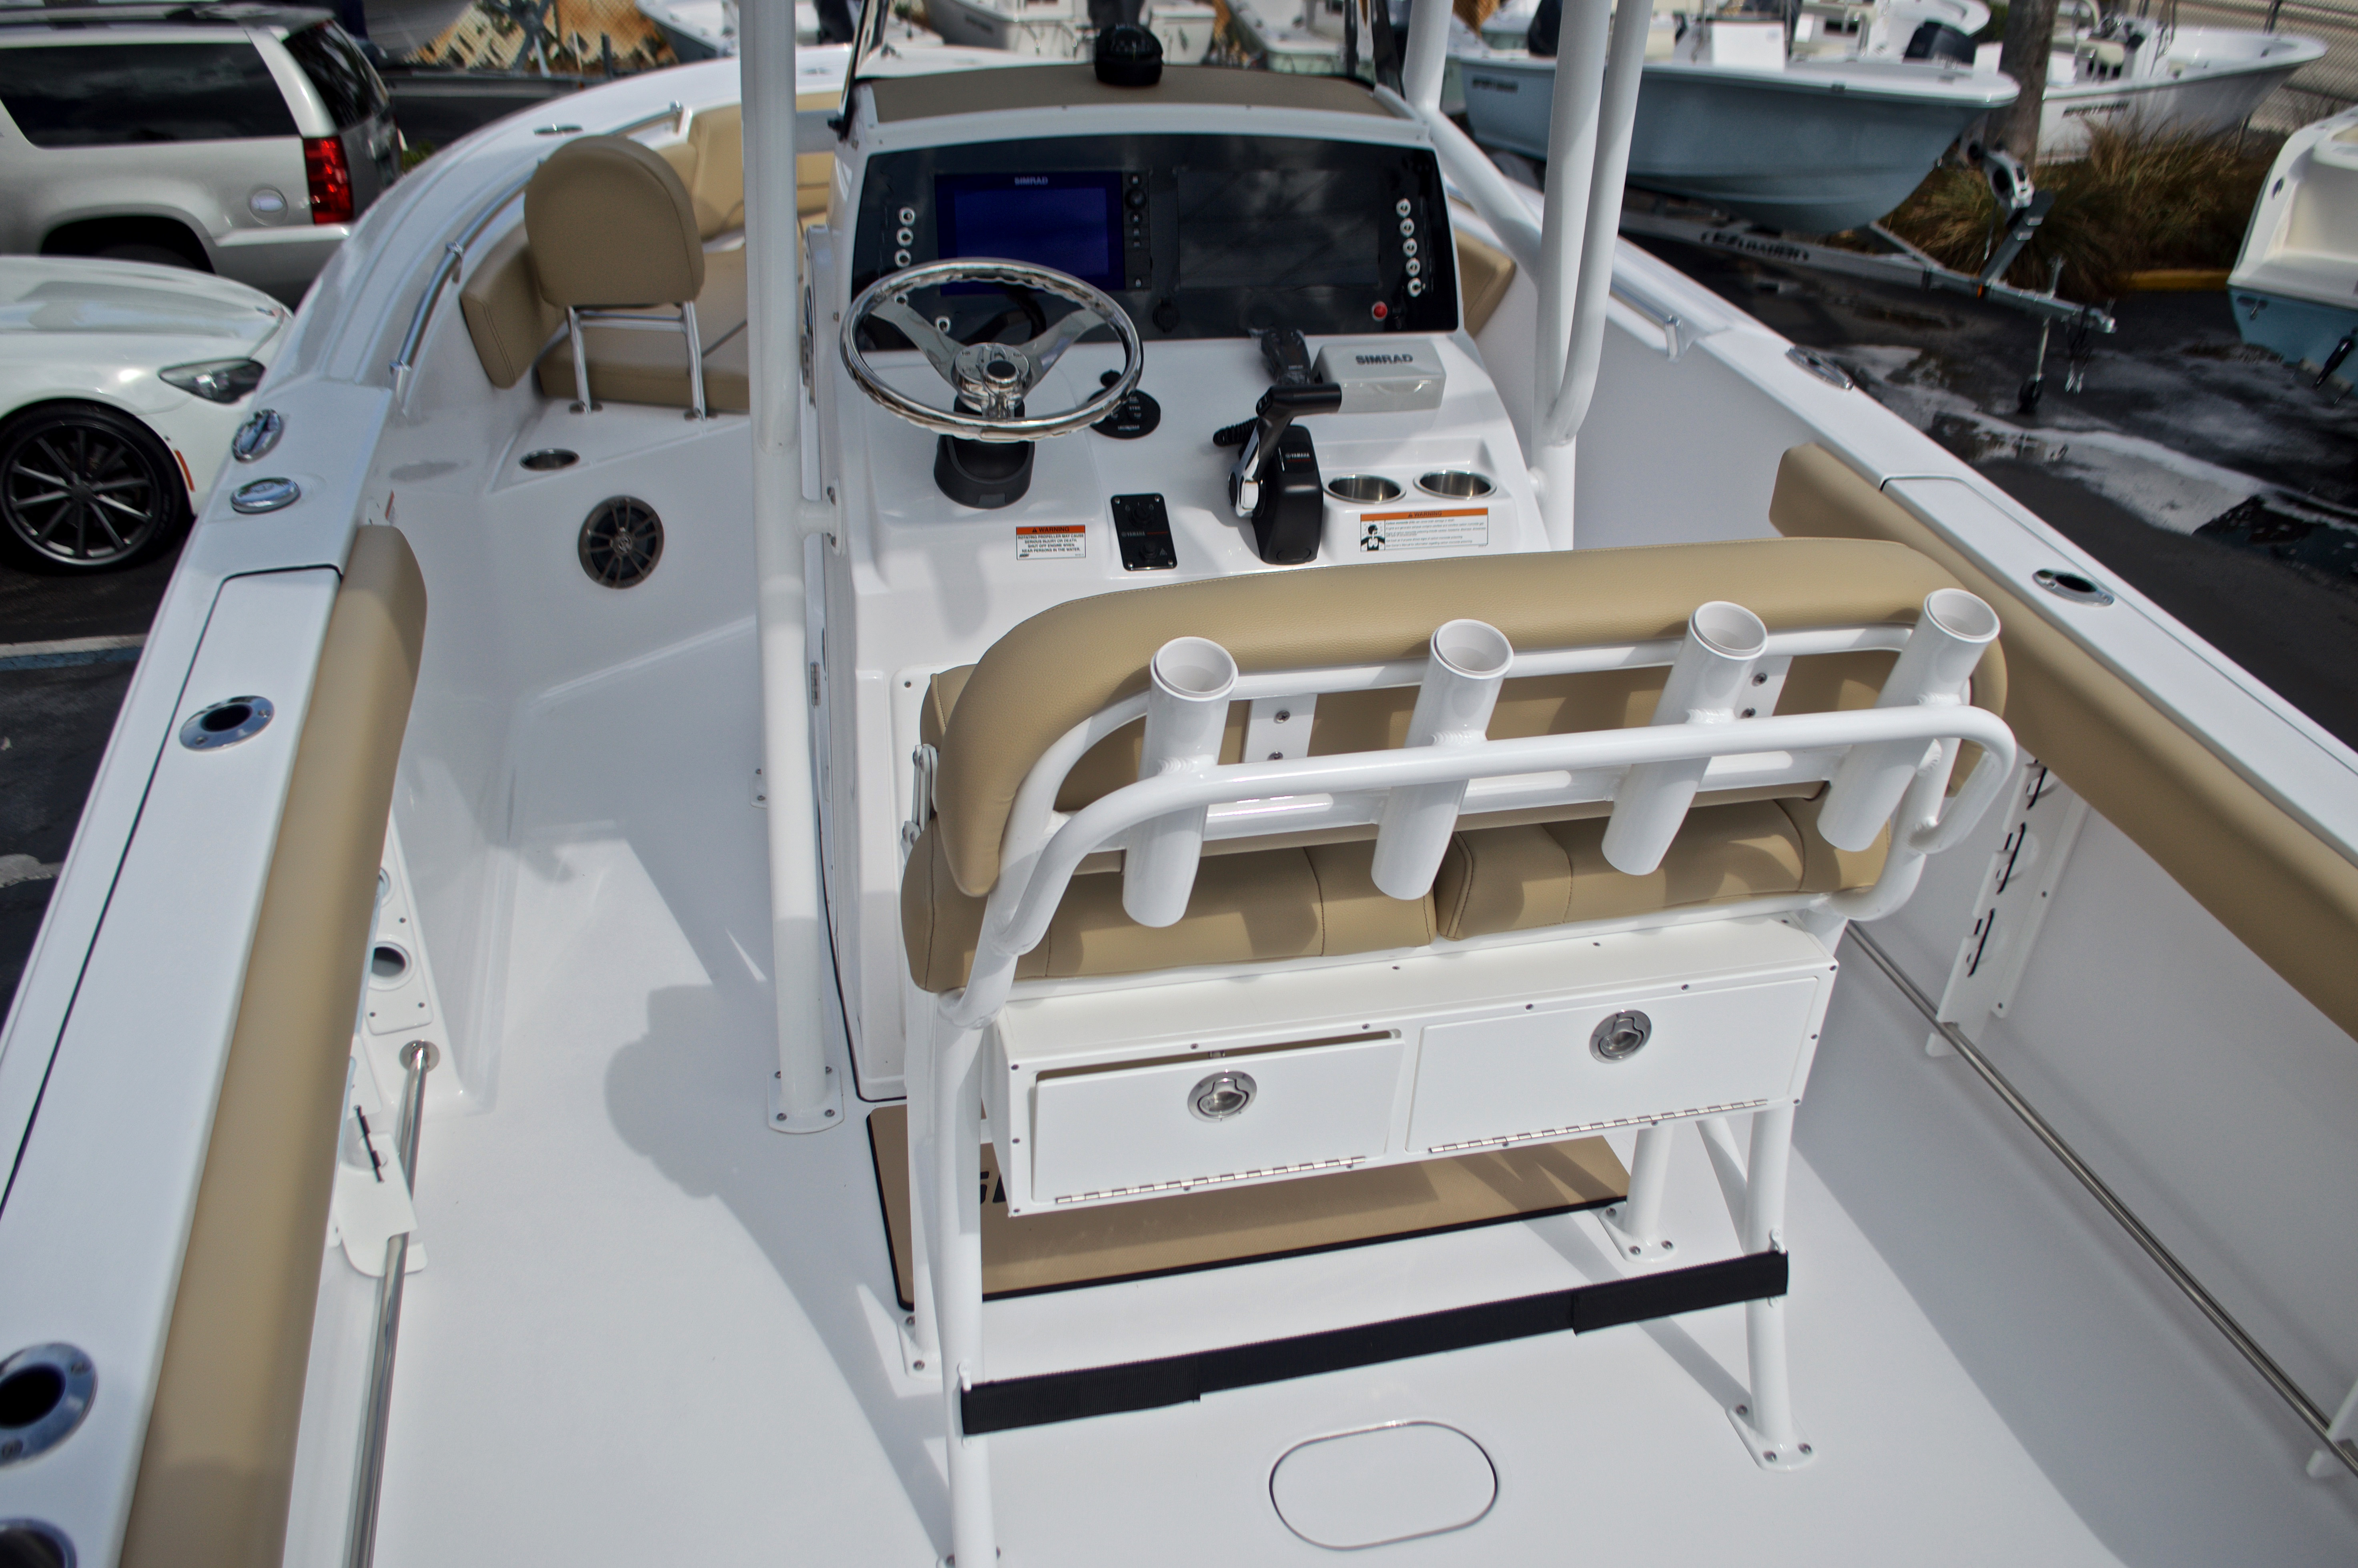 Thumbnail 11 for New 2017 Sportsman Open 232 Center Console boat for sale in West Palm Beach, FL